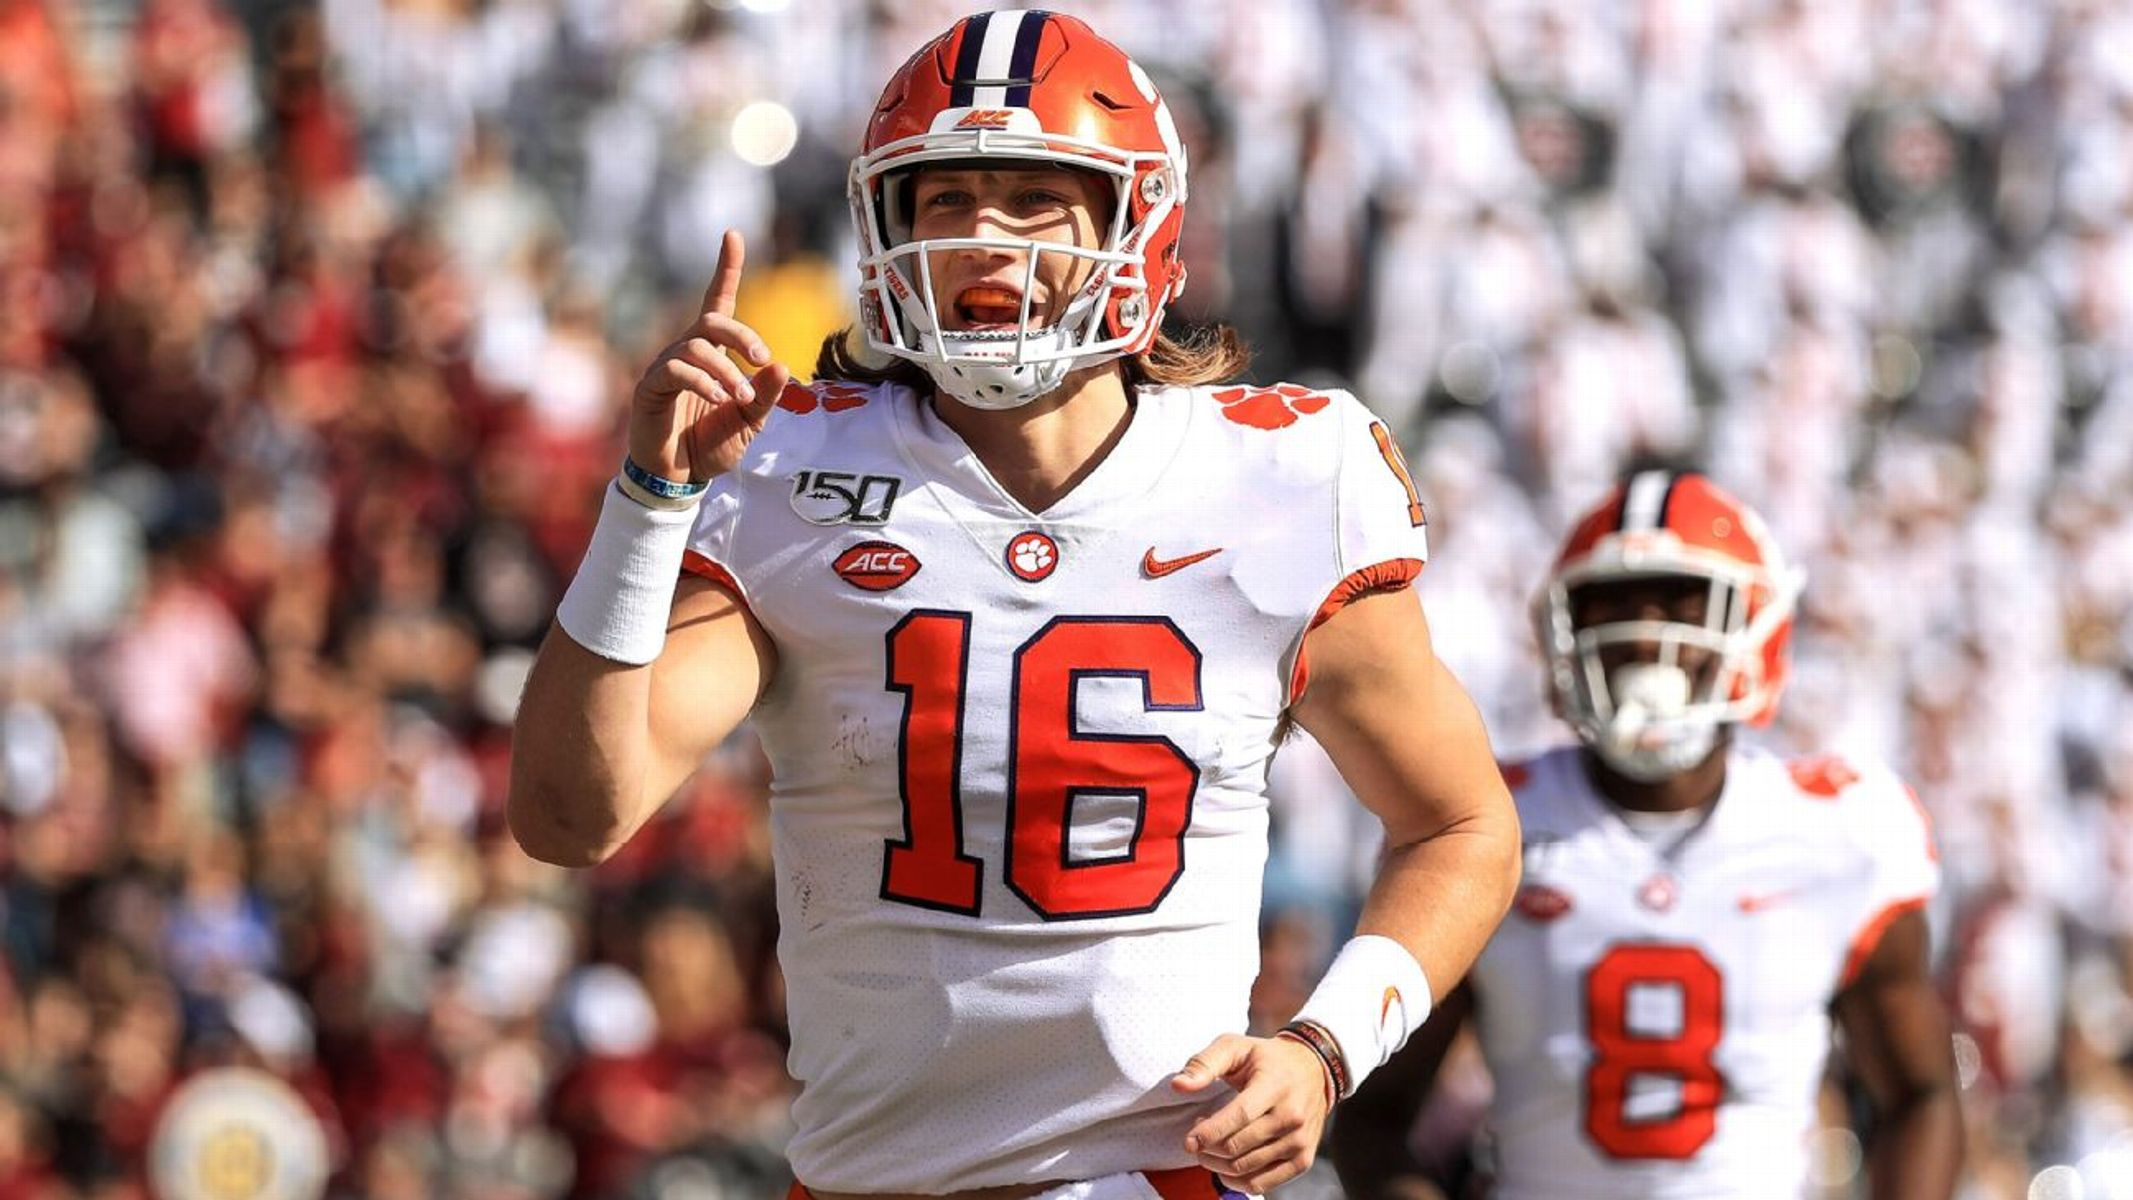 Trevor Lawrence leads the 2020 Way-Too-Early All-America team